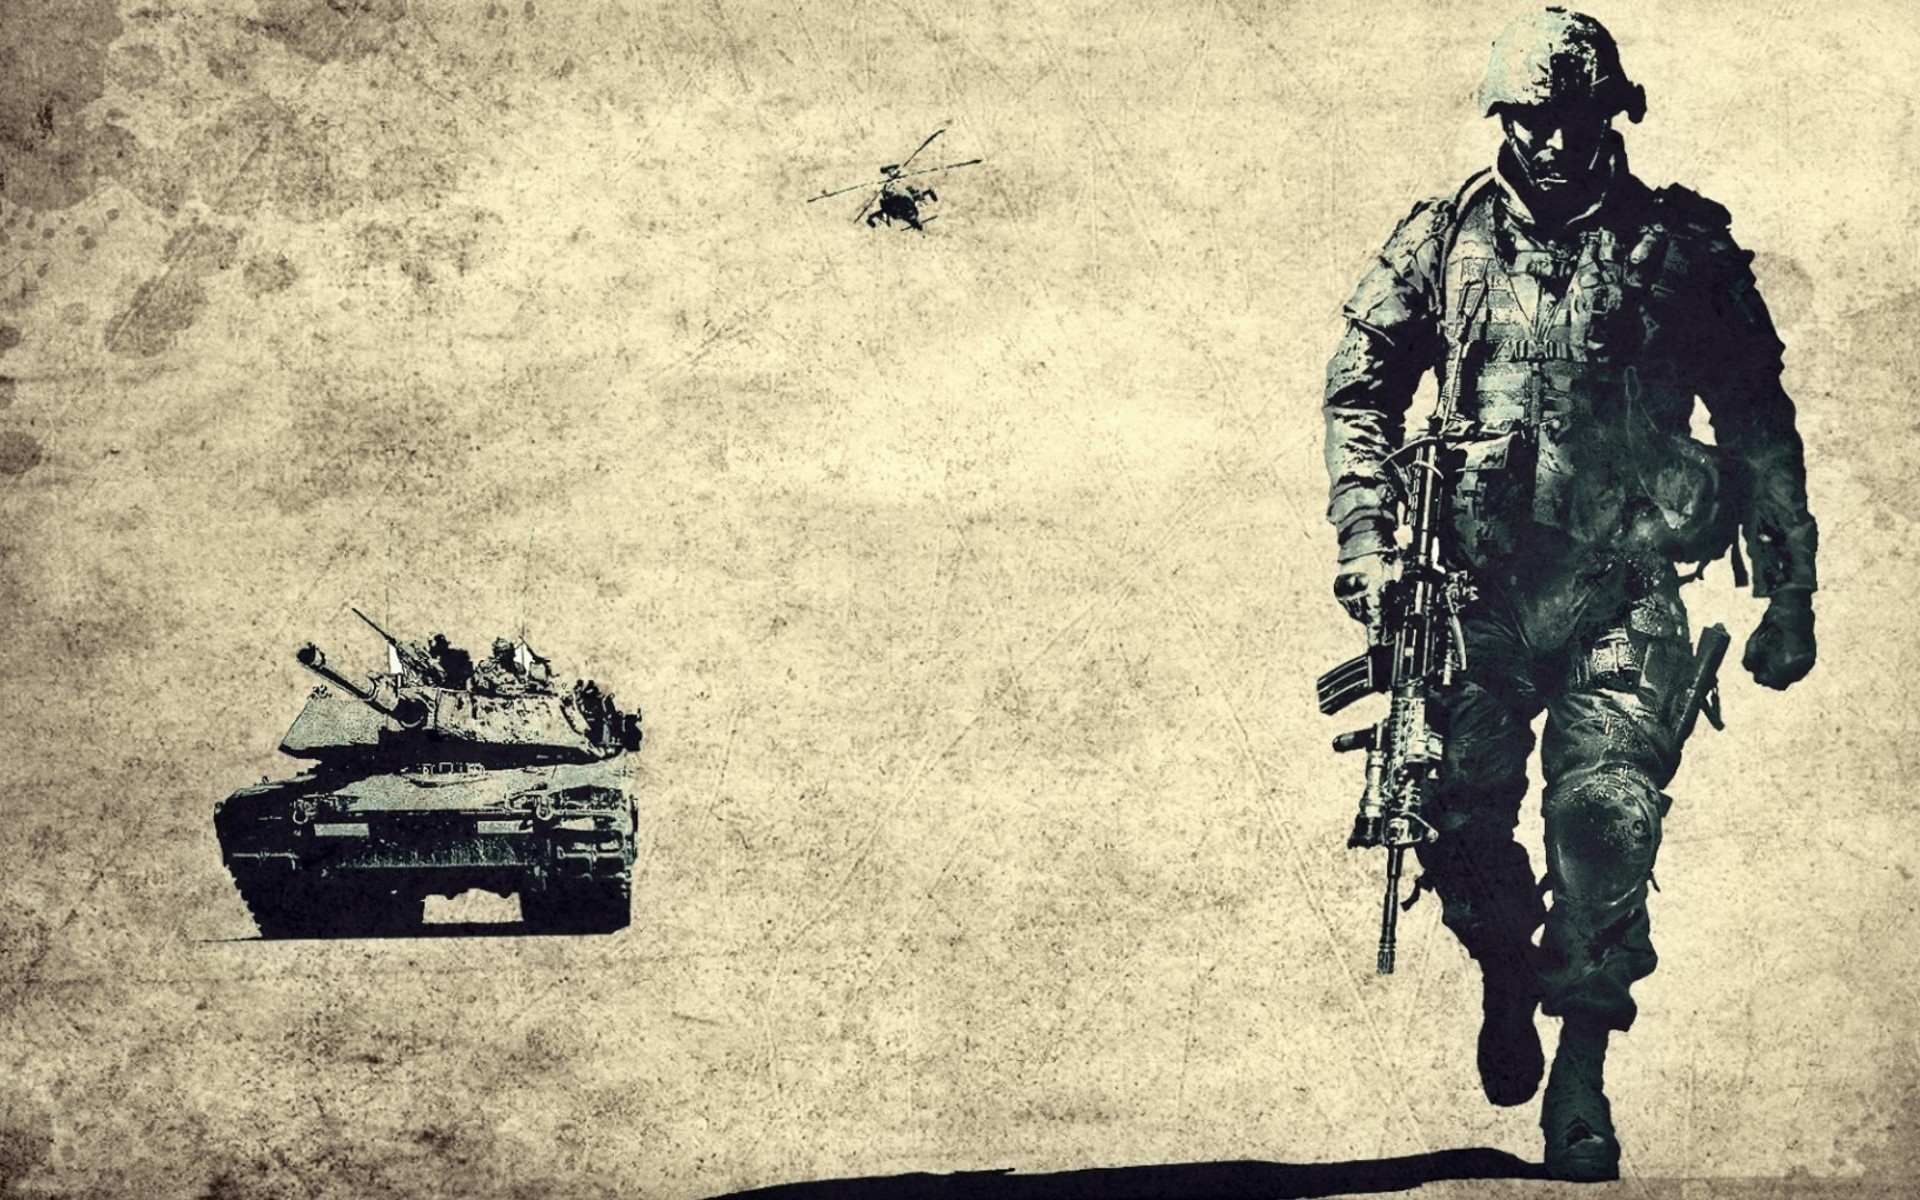 Download Us Army Wallpaper Hd 51: Army Wallpaper ·① Download Free High Resolution